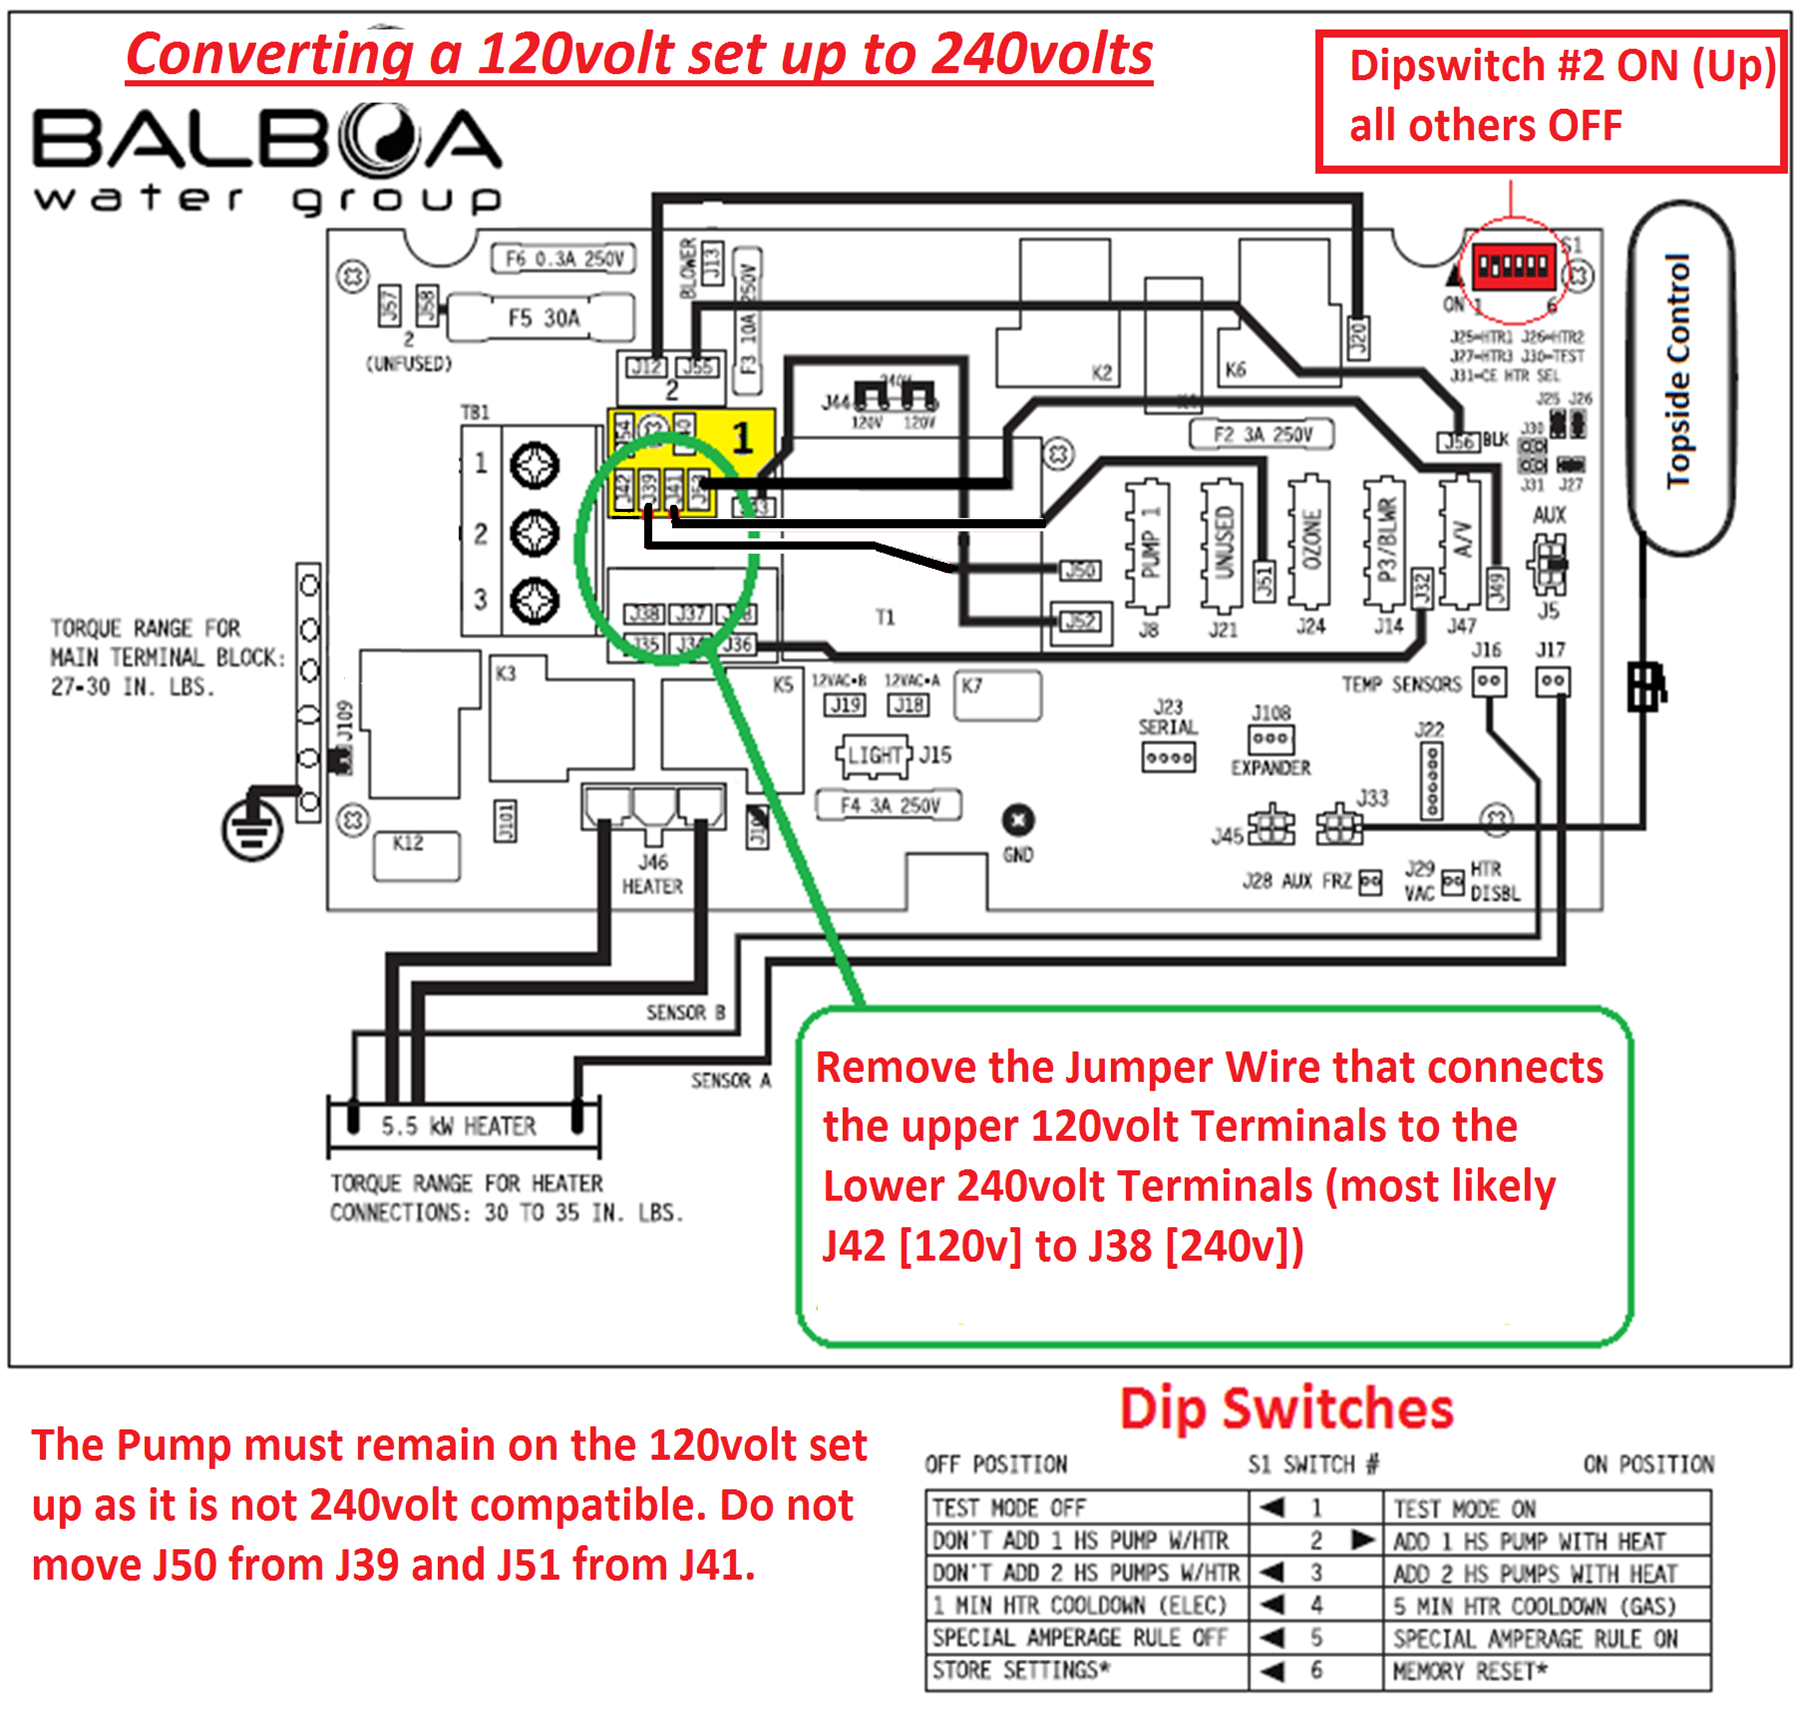 medium resolution of electrical installation converting a 120v balboa bp to 240v hydro quip heater wiring schematics